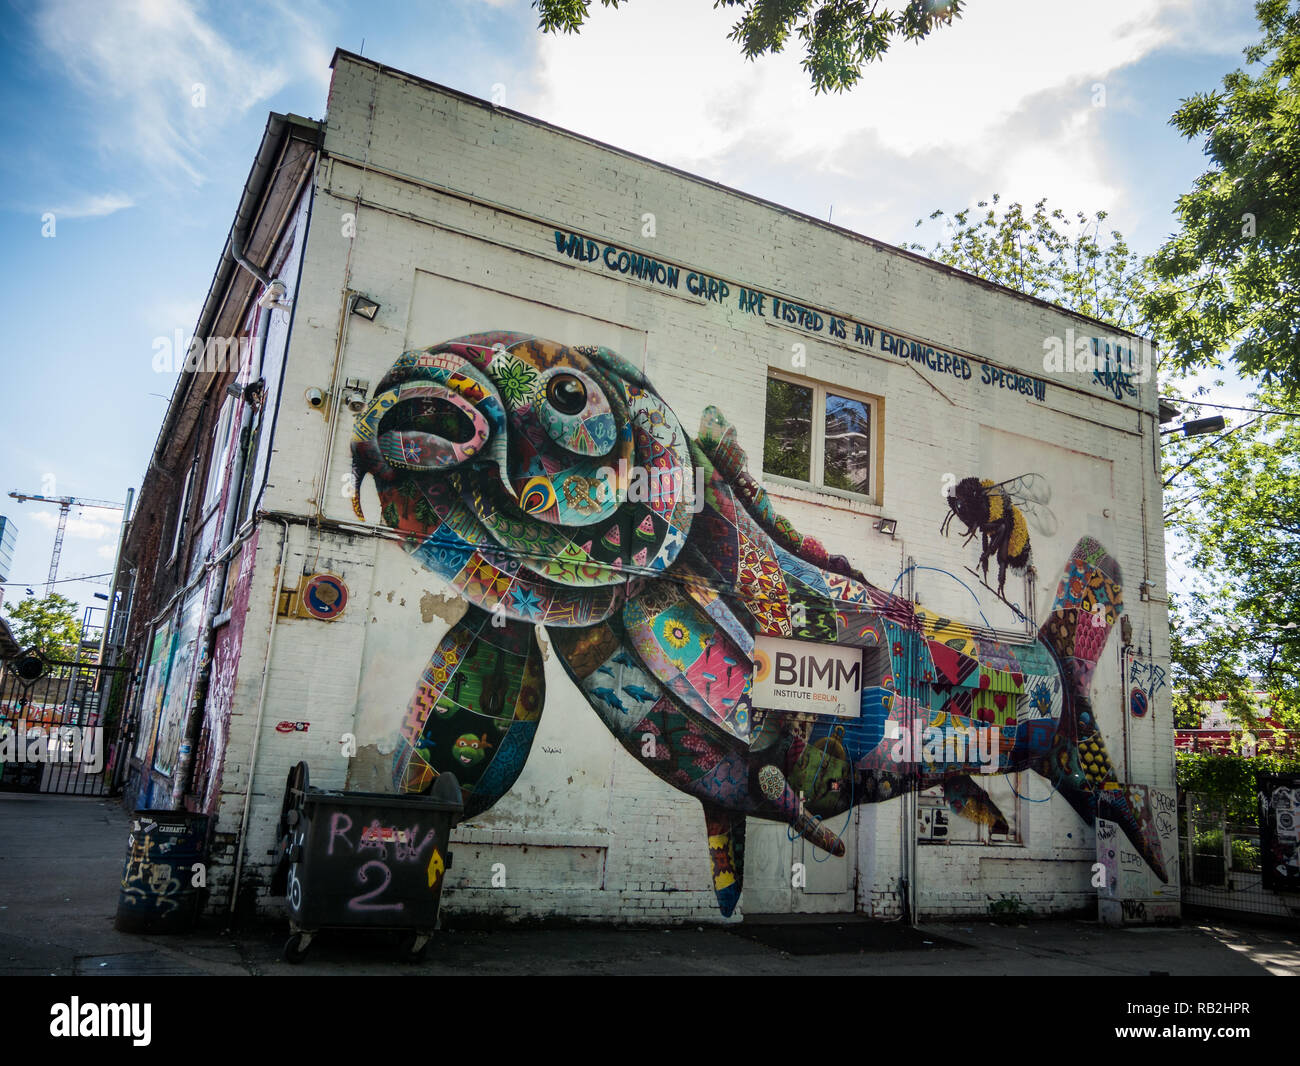 Berlin, Germany - May 21st 2018: Old industrial buildings decorated with colorful fish and bee graffiti, street arts - Stock Image